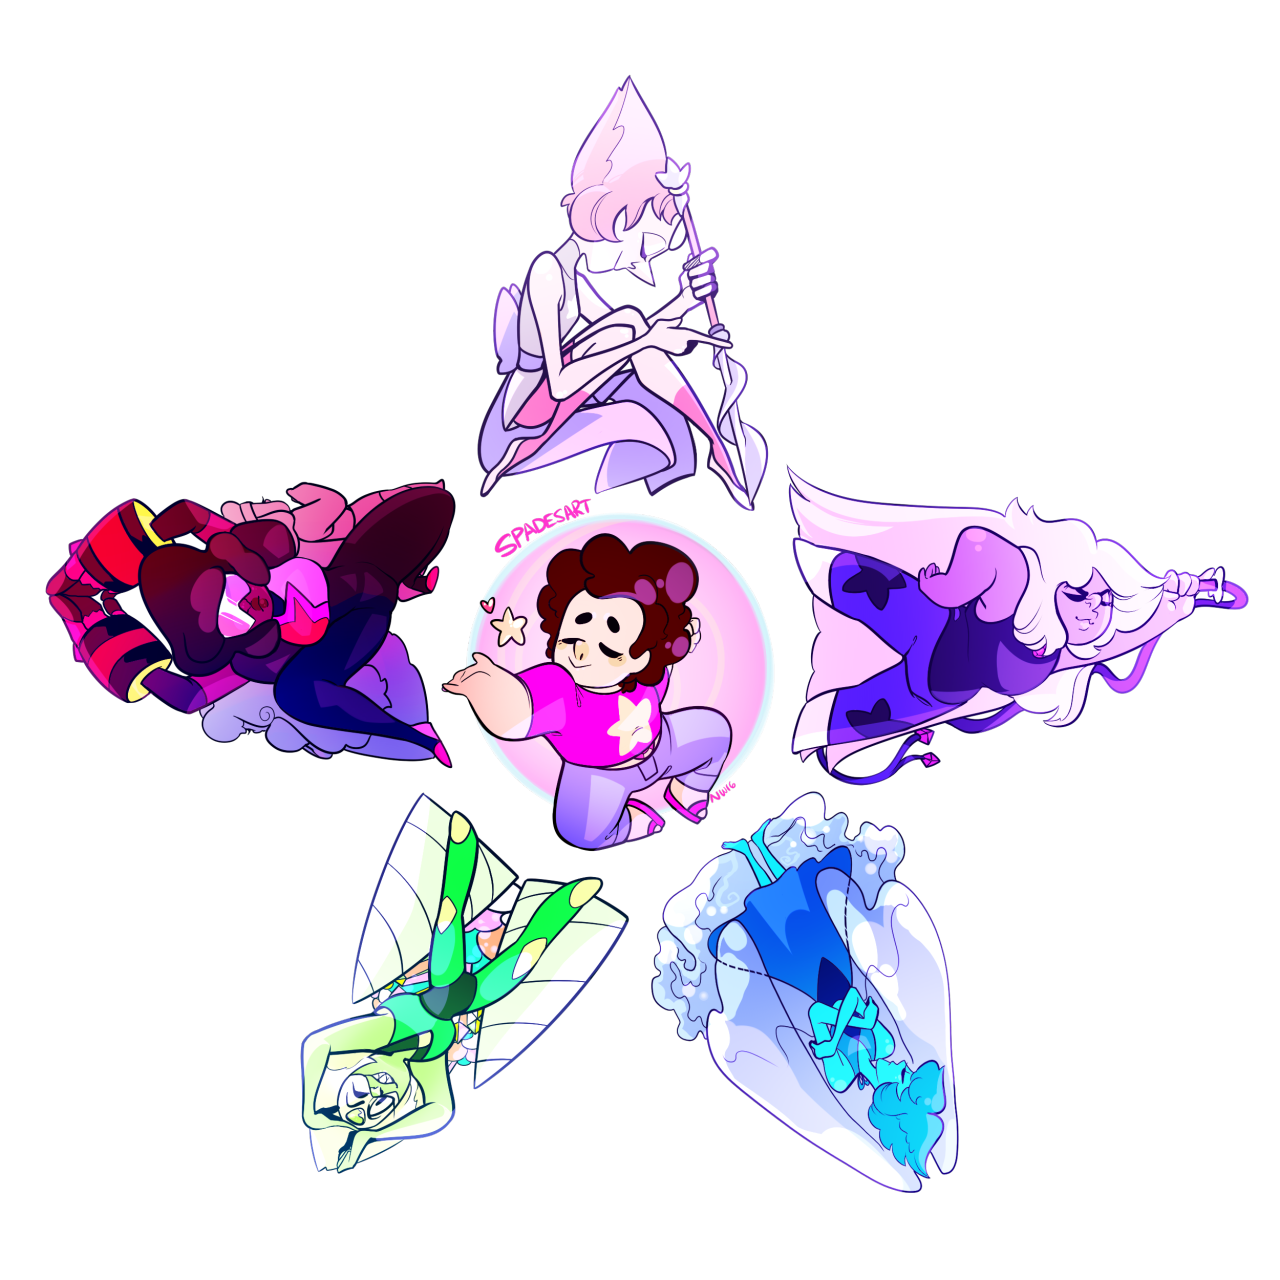 Crystal Gems star shirt design ive been wanting to make!!! BUY IT HERE!